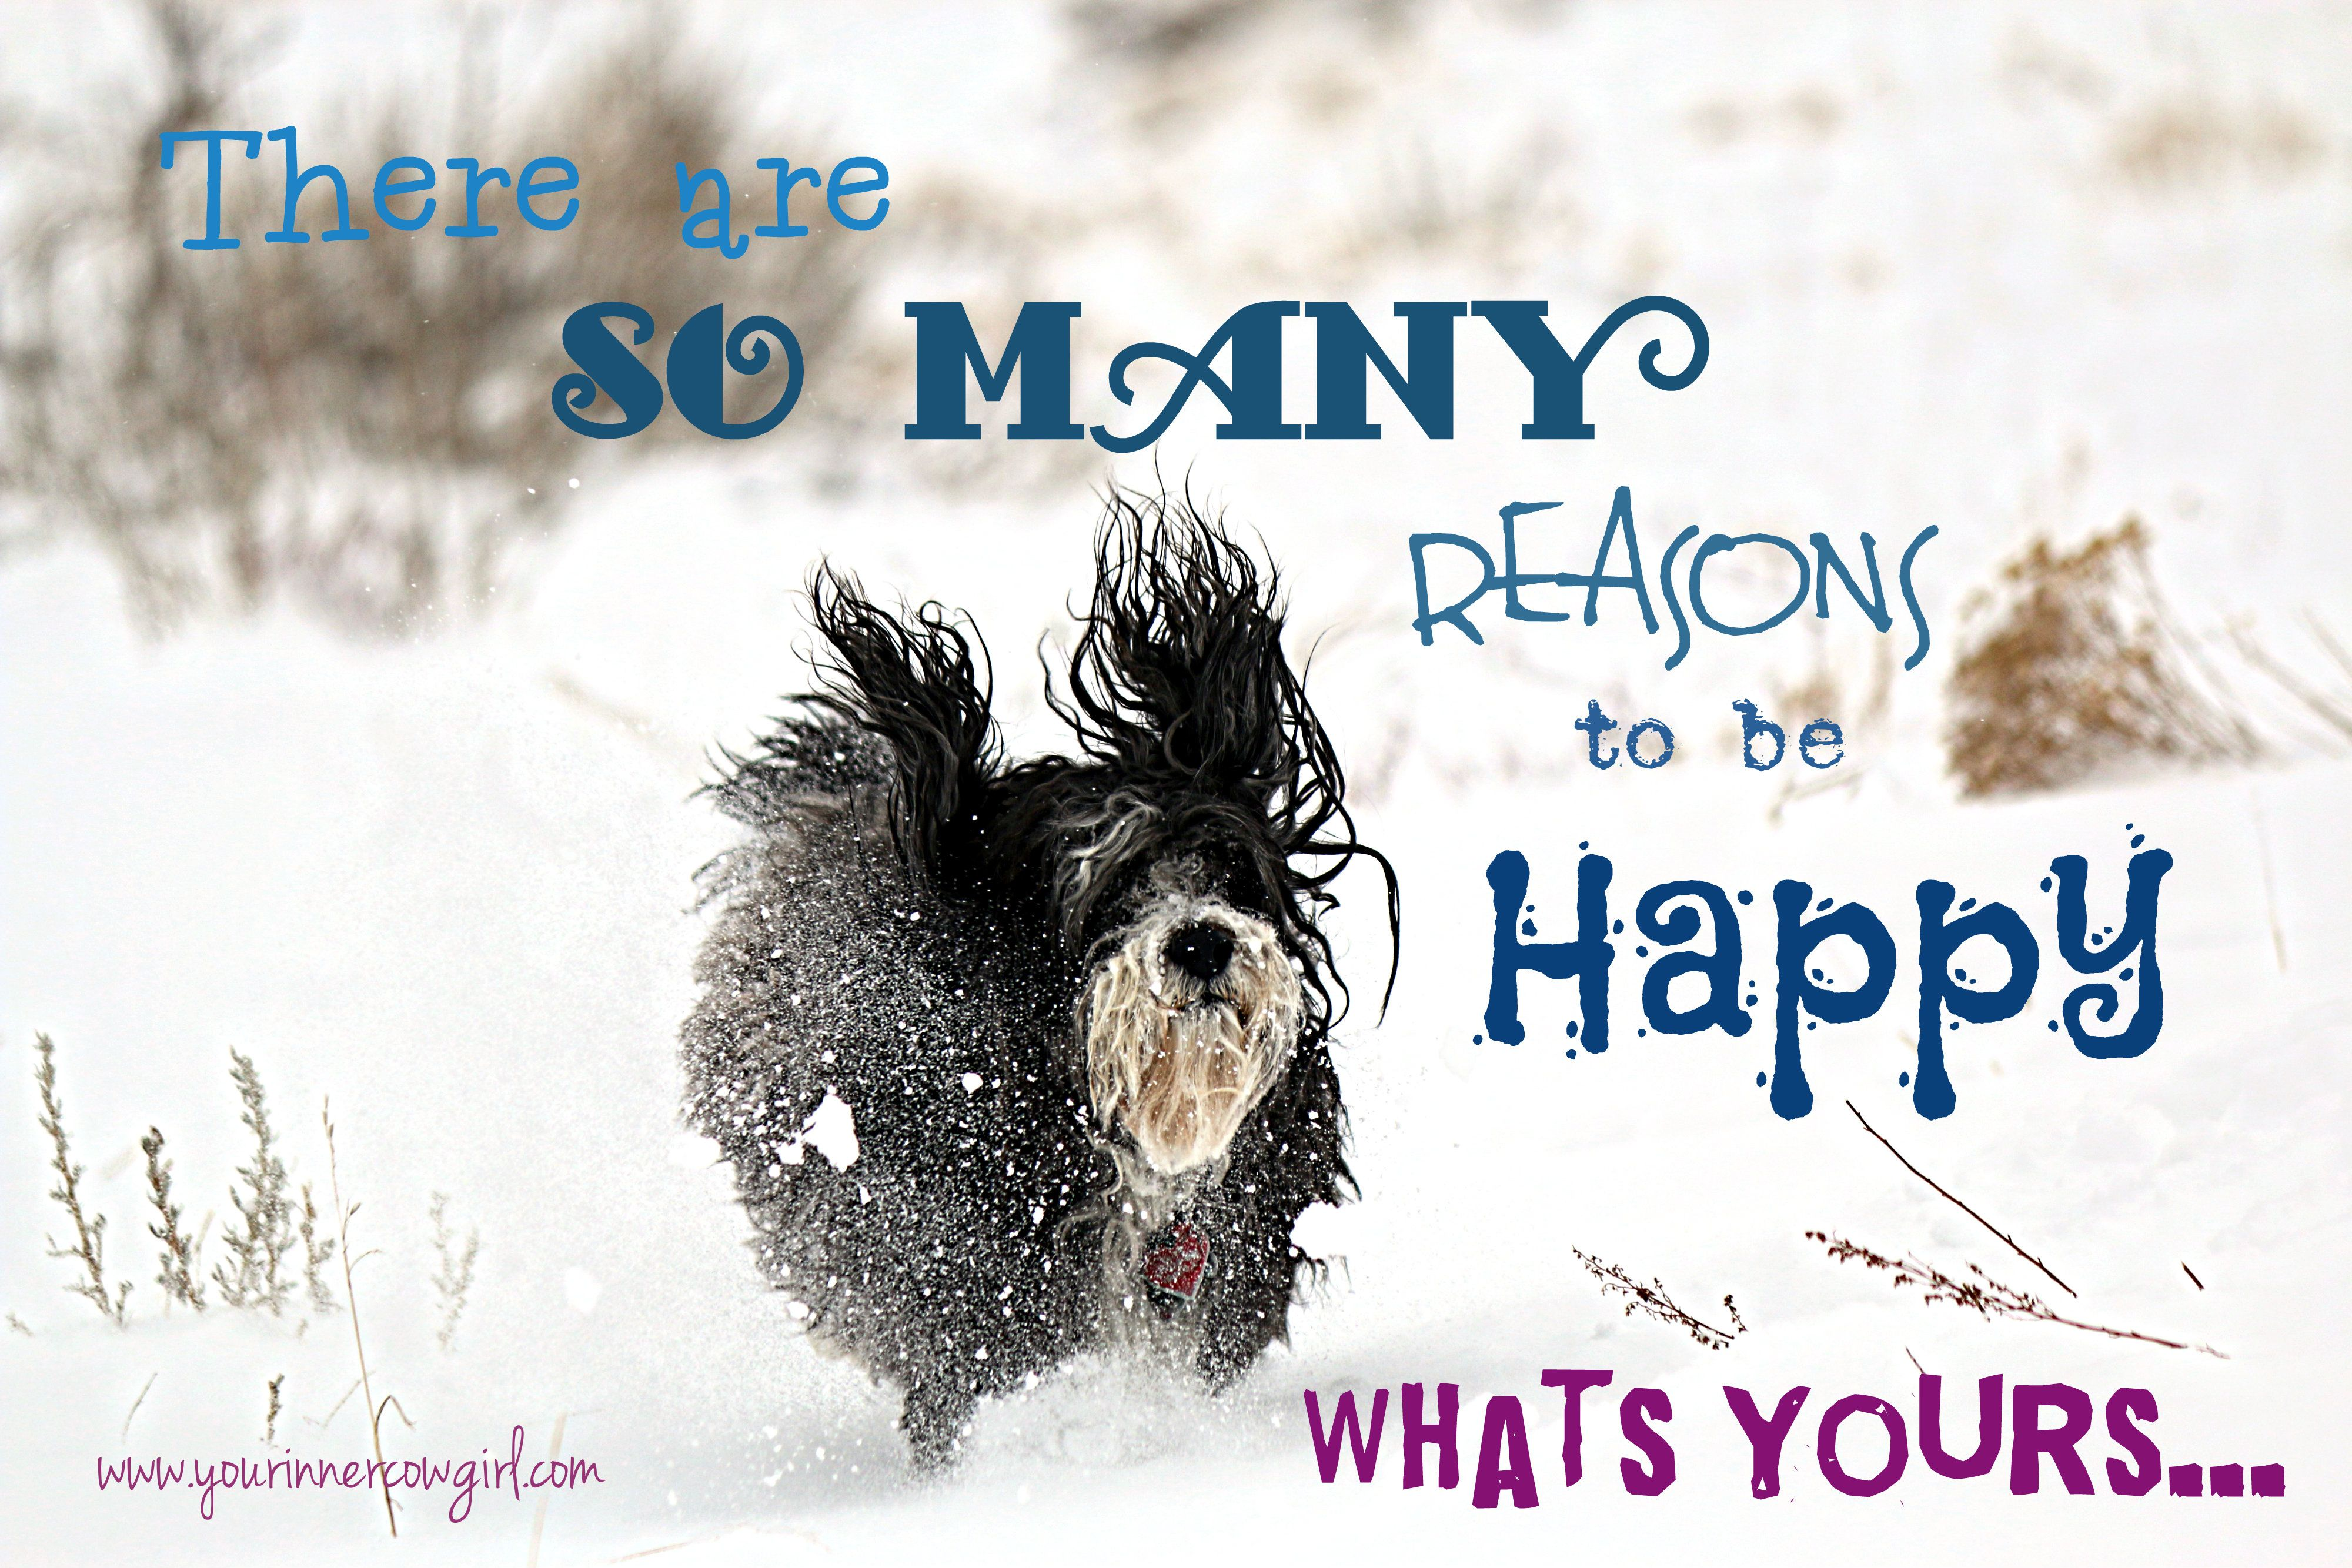 There are so many reasons to be happy...what's yours